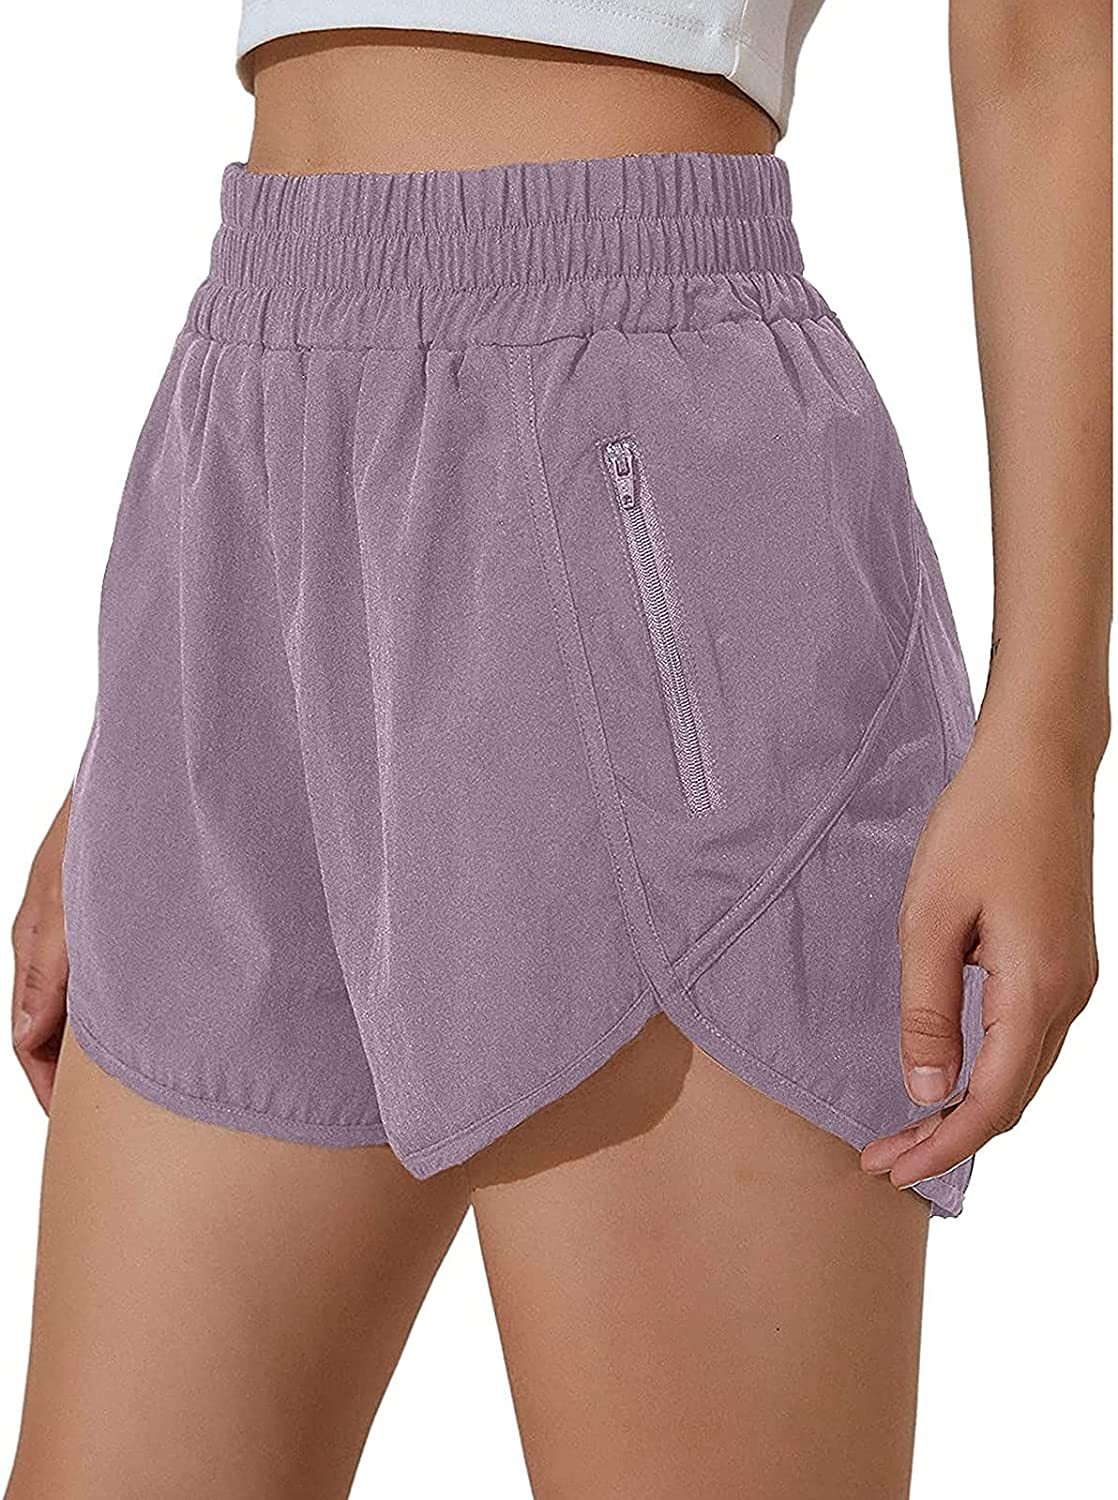 FlekmanArt Womens Workout Shorts with Quick-Dry Athle Pocket Zip Max 57% New Shipping Free Shipping OFF